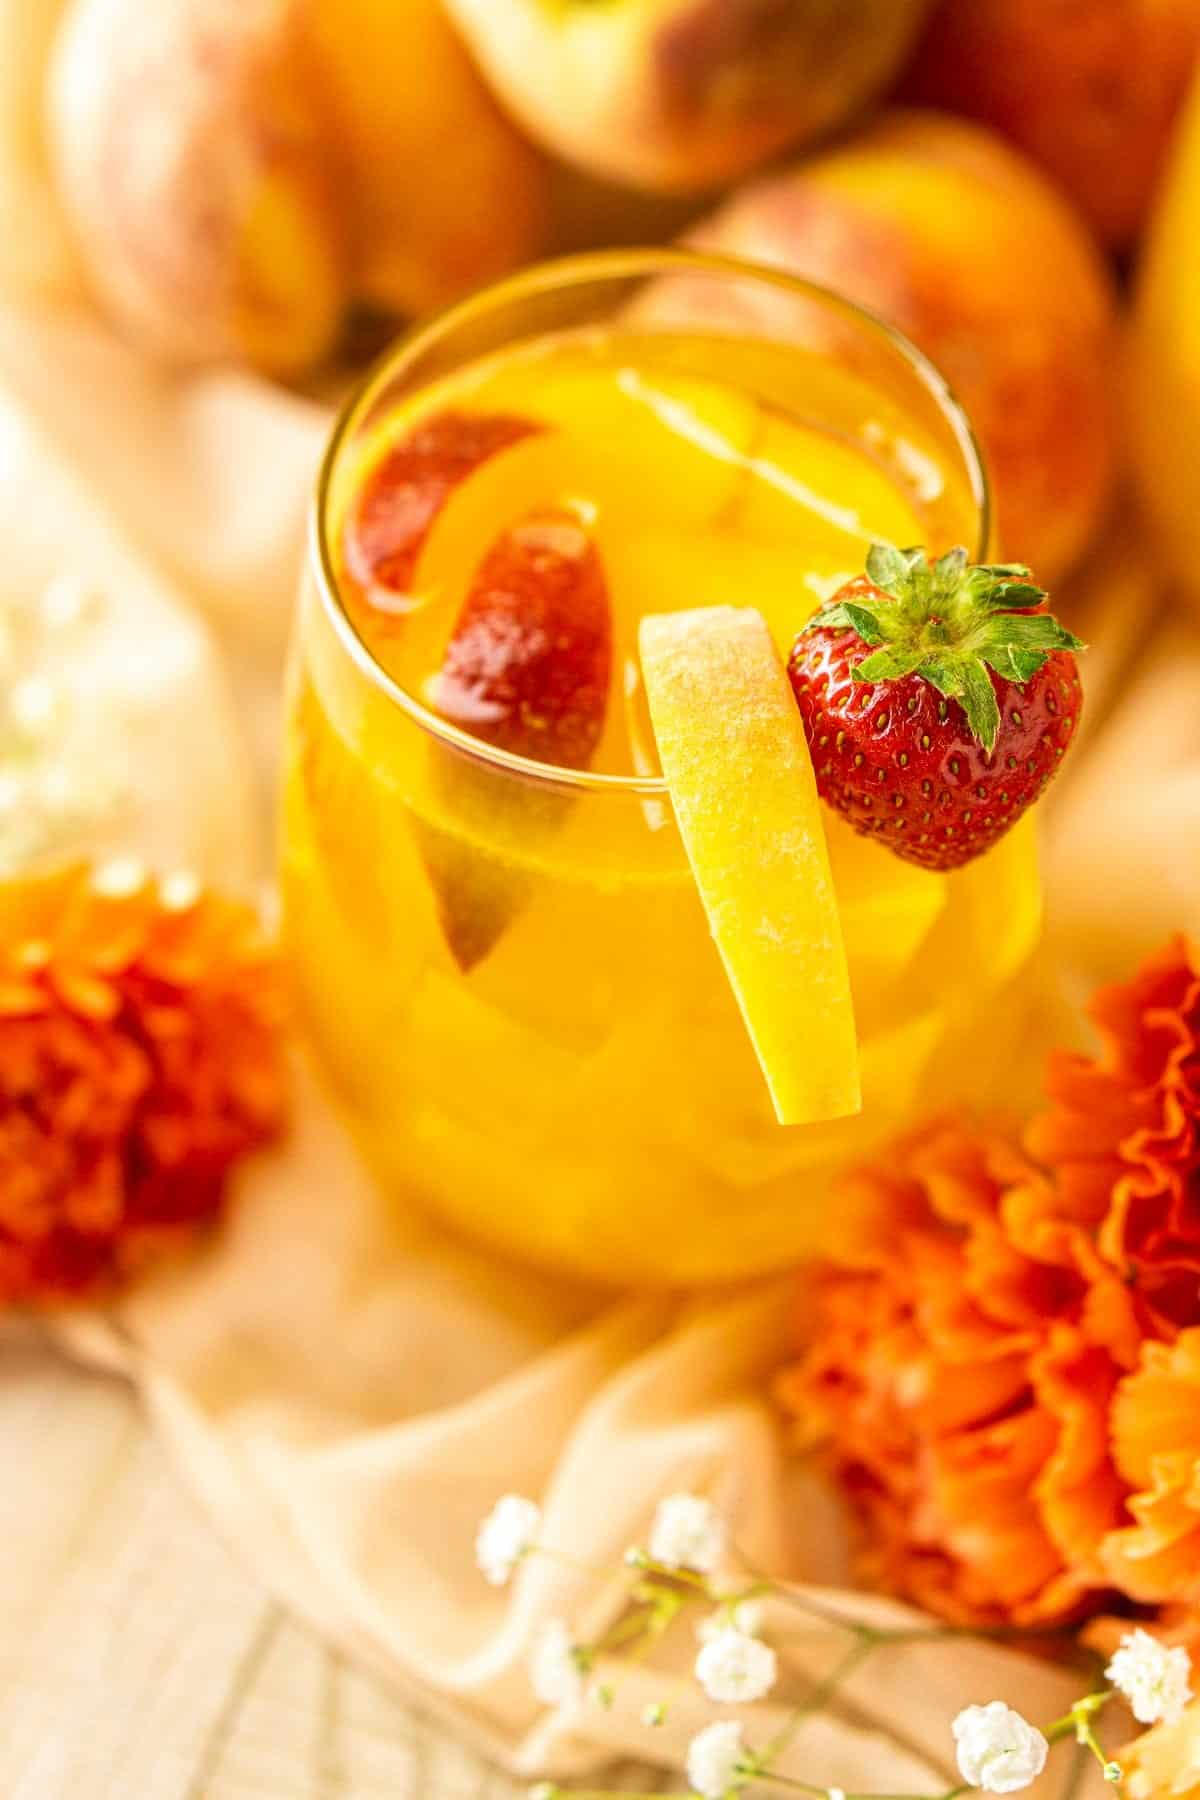 A close-up of a glass of peach sangria with flowers and peaches beside it.